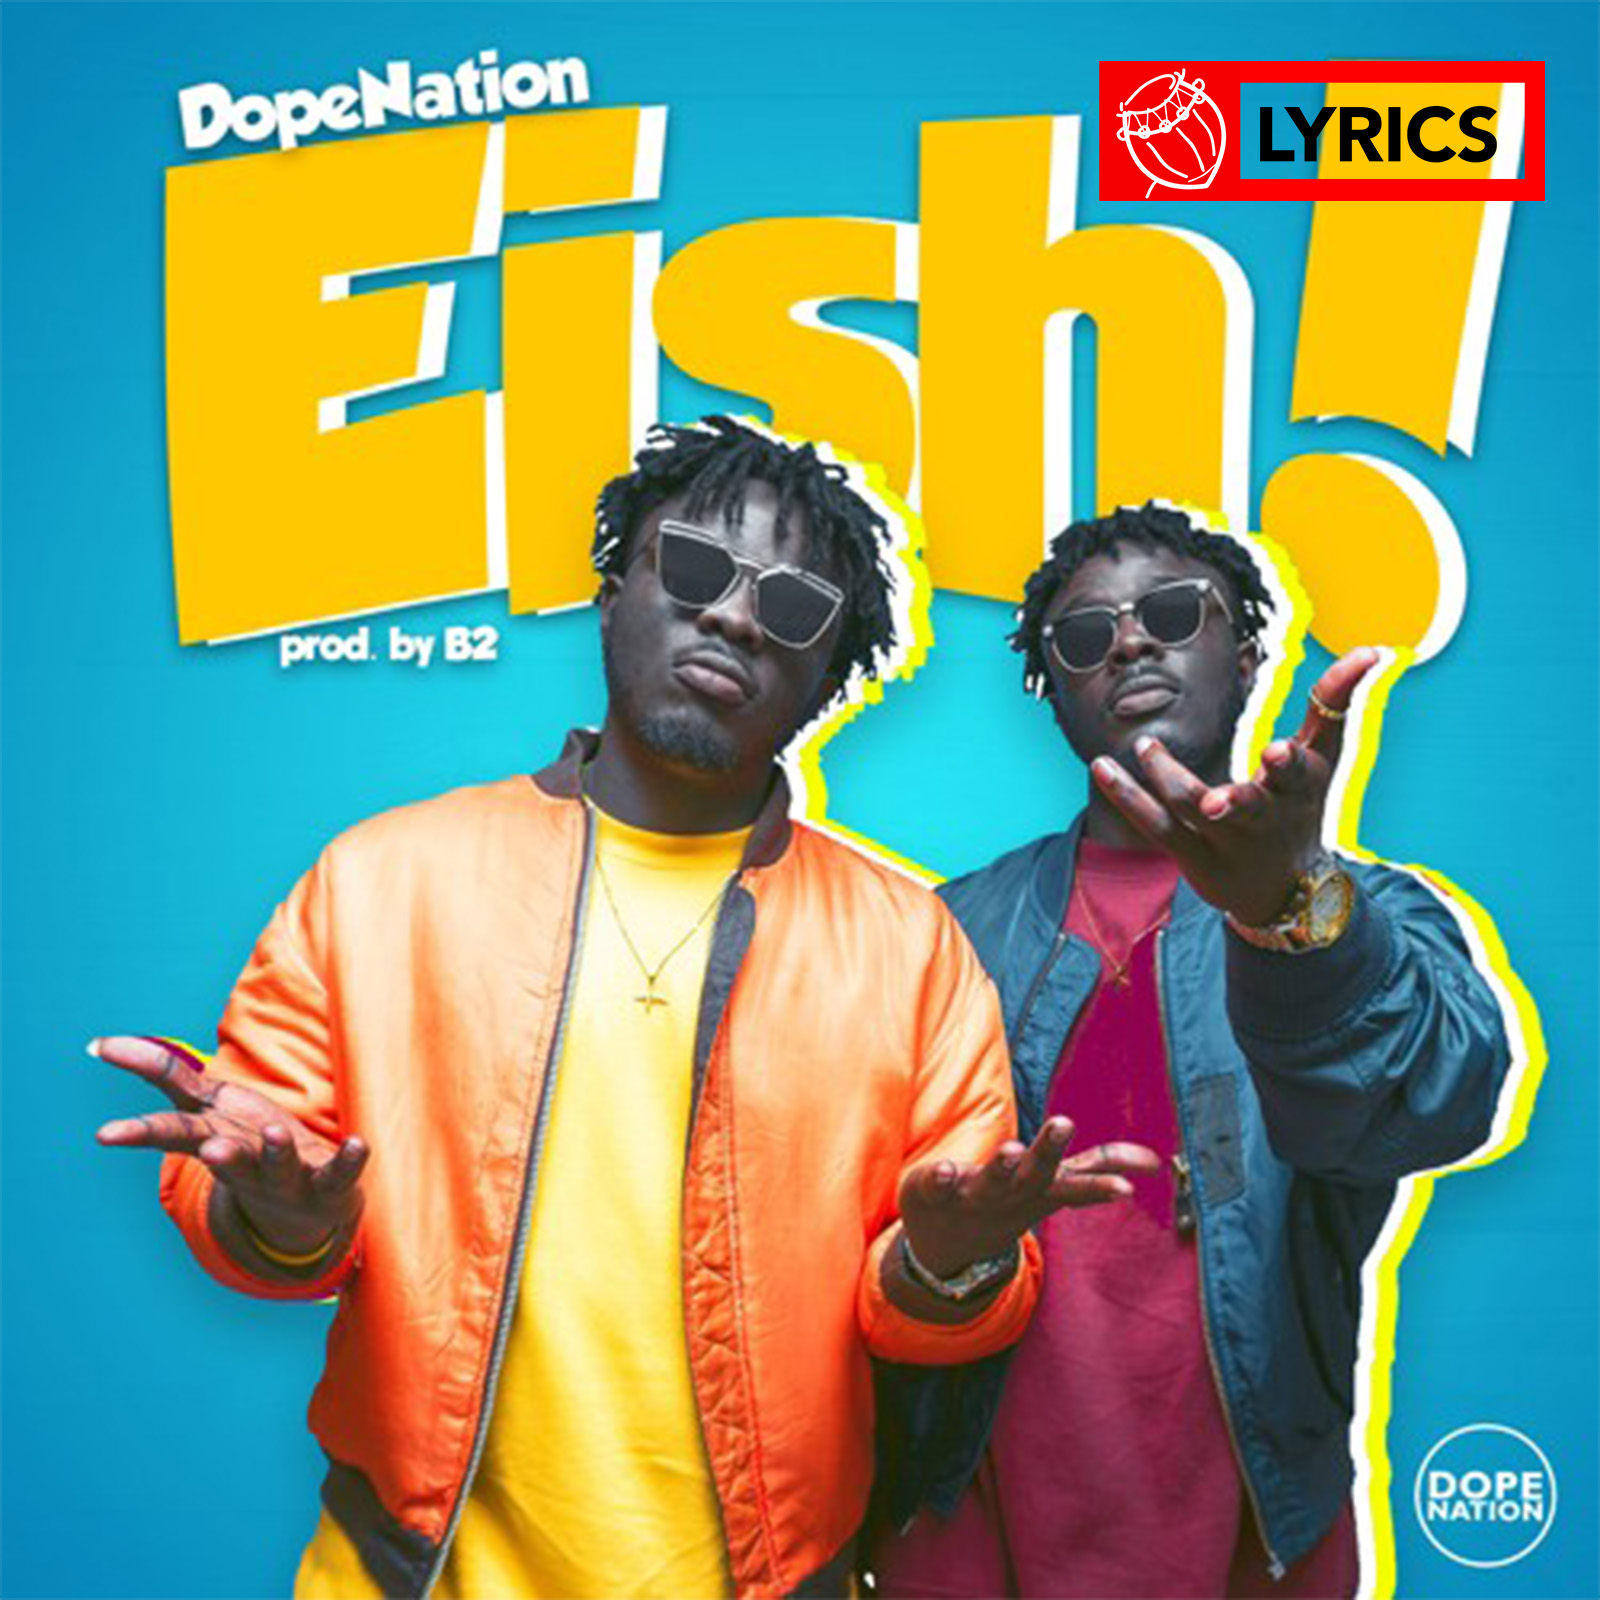 Lyrics: Eish by DopeNation